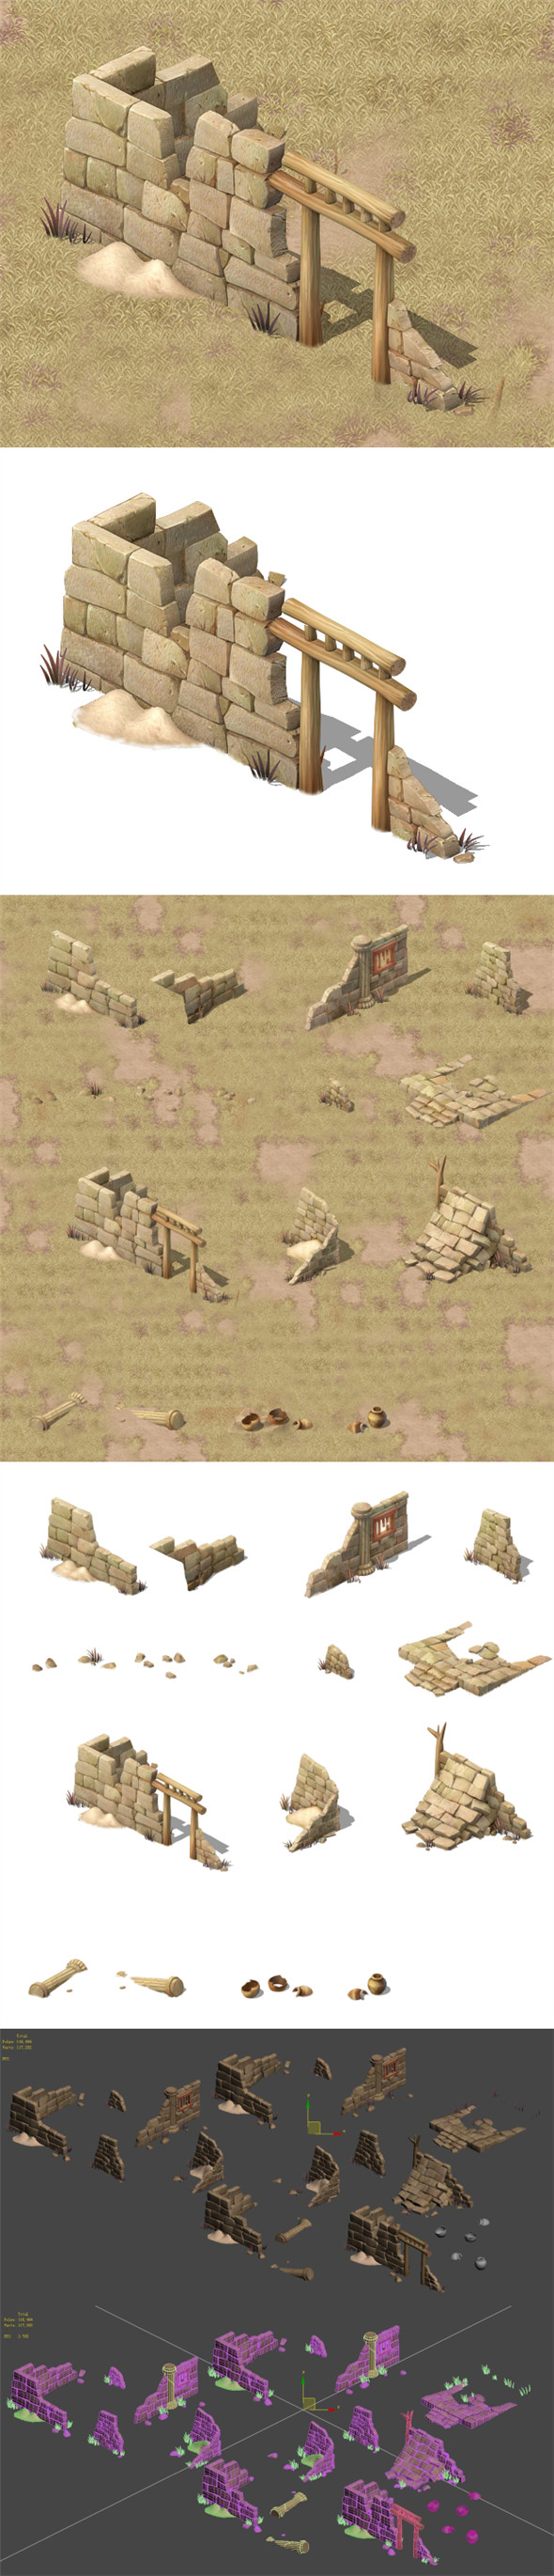 Cartoon version - village ruins - 3DOcean Item for Sale